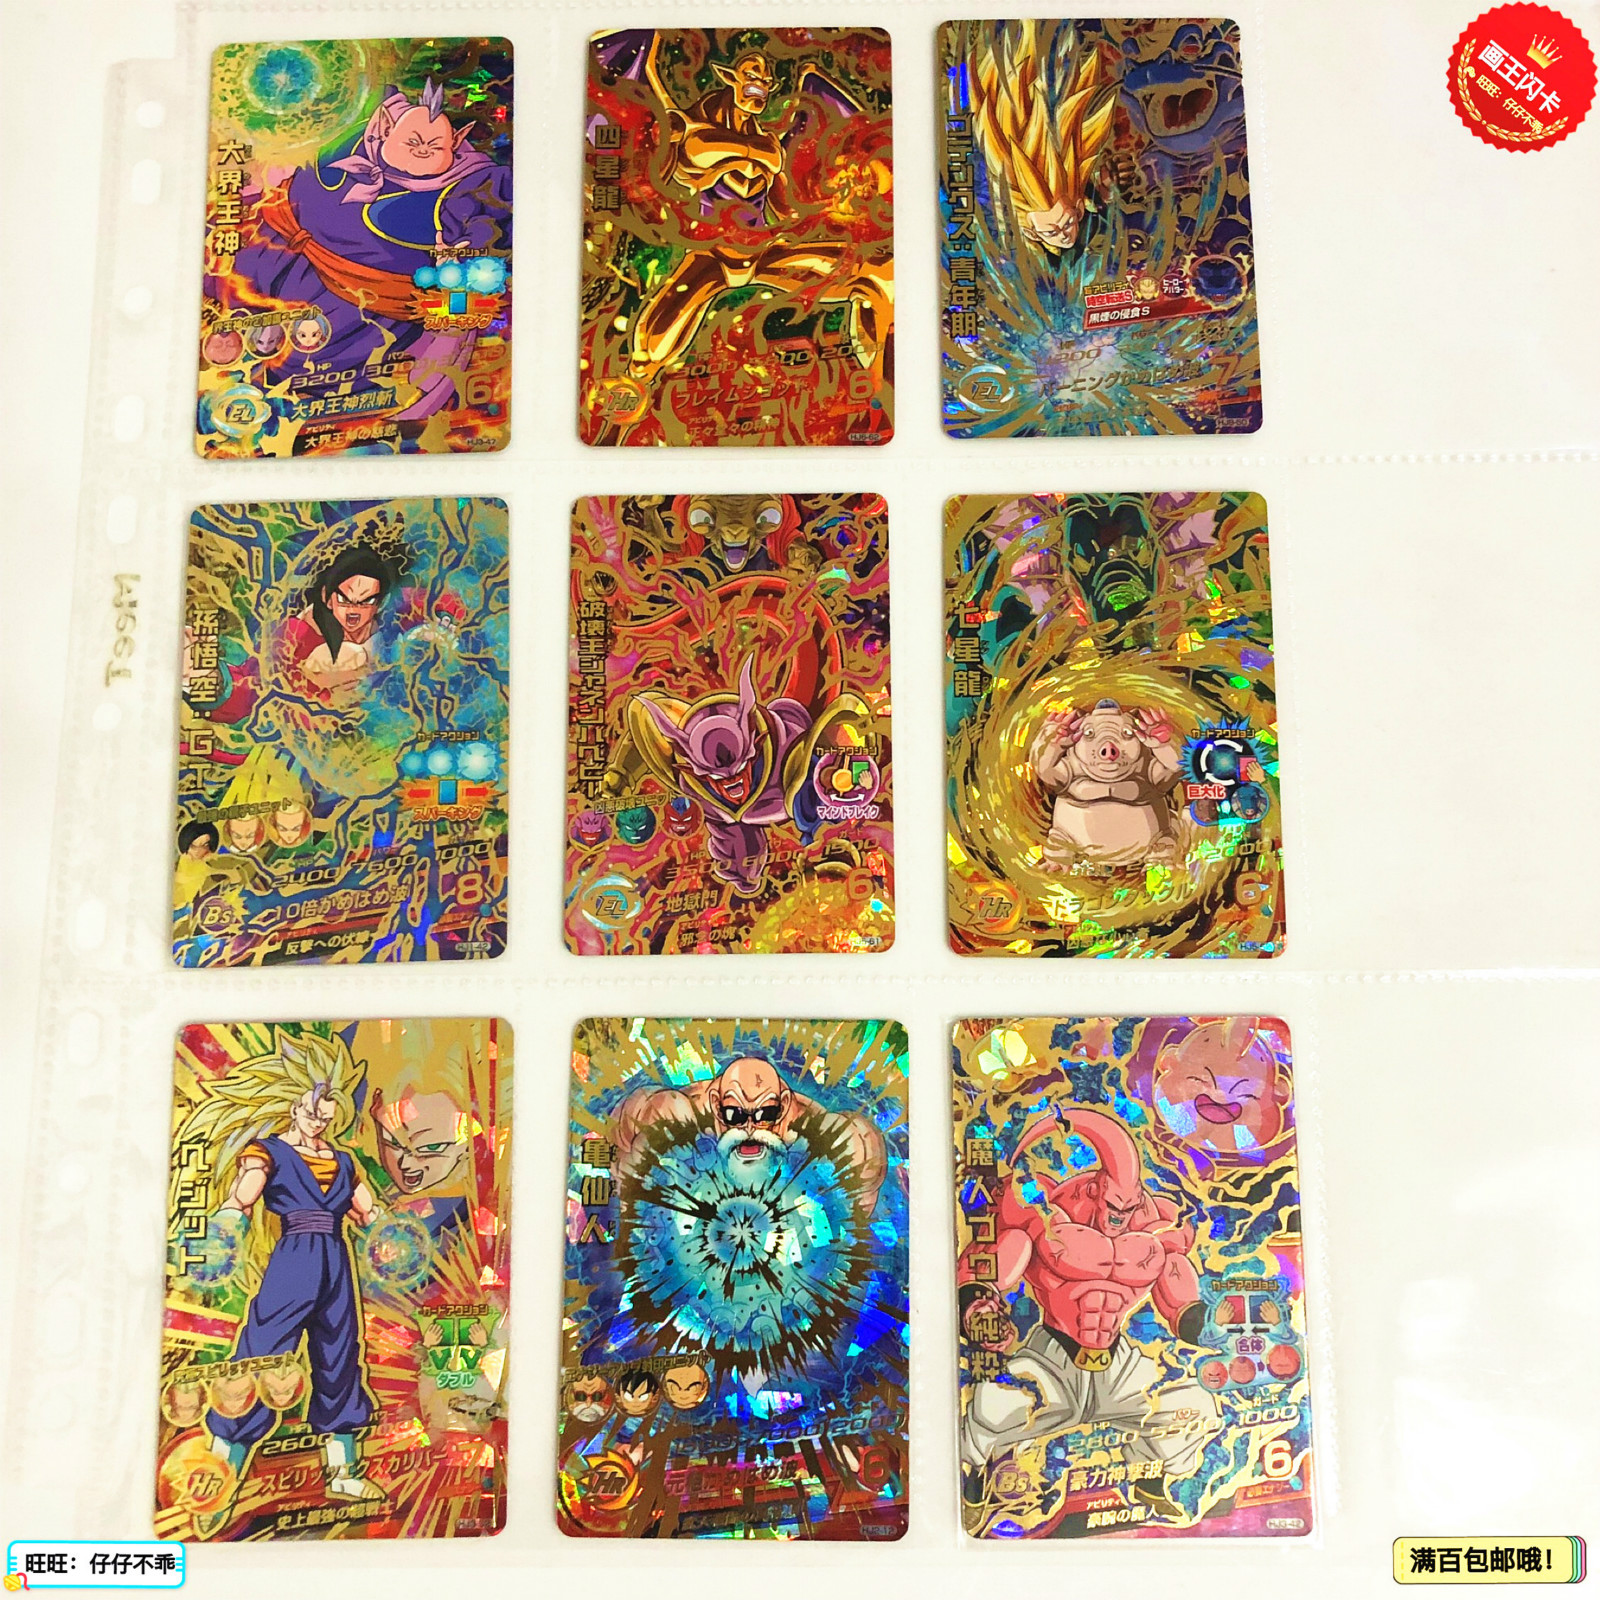 Japan Original Dragon Ball Hero Card SEC 4 Stars UR HJ Goku Toys Hobbies Collectibles Game Collection Anime Cards